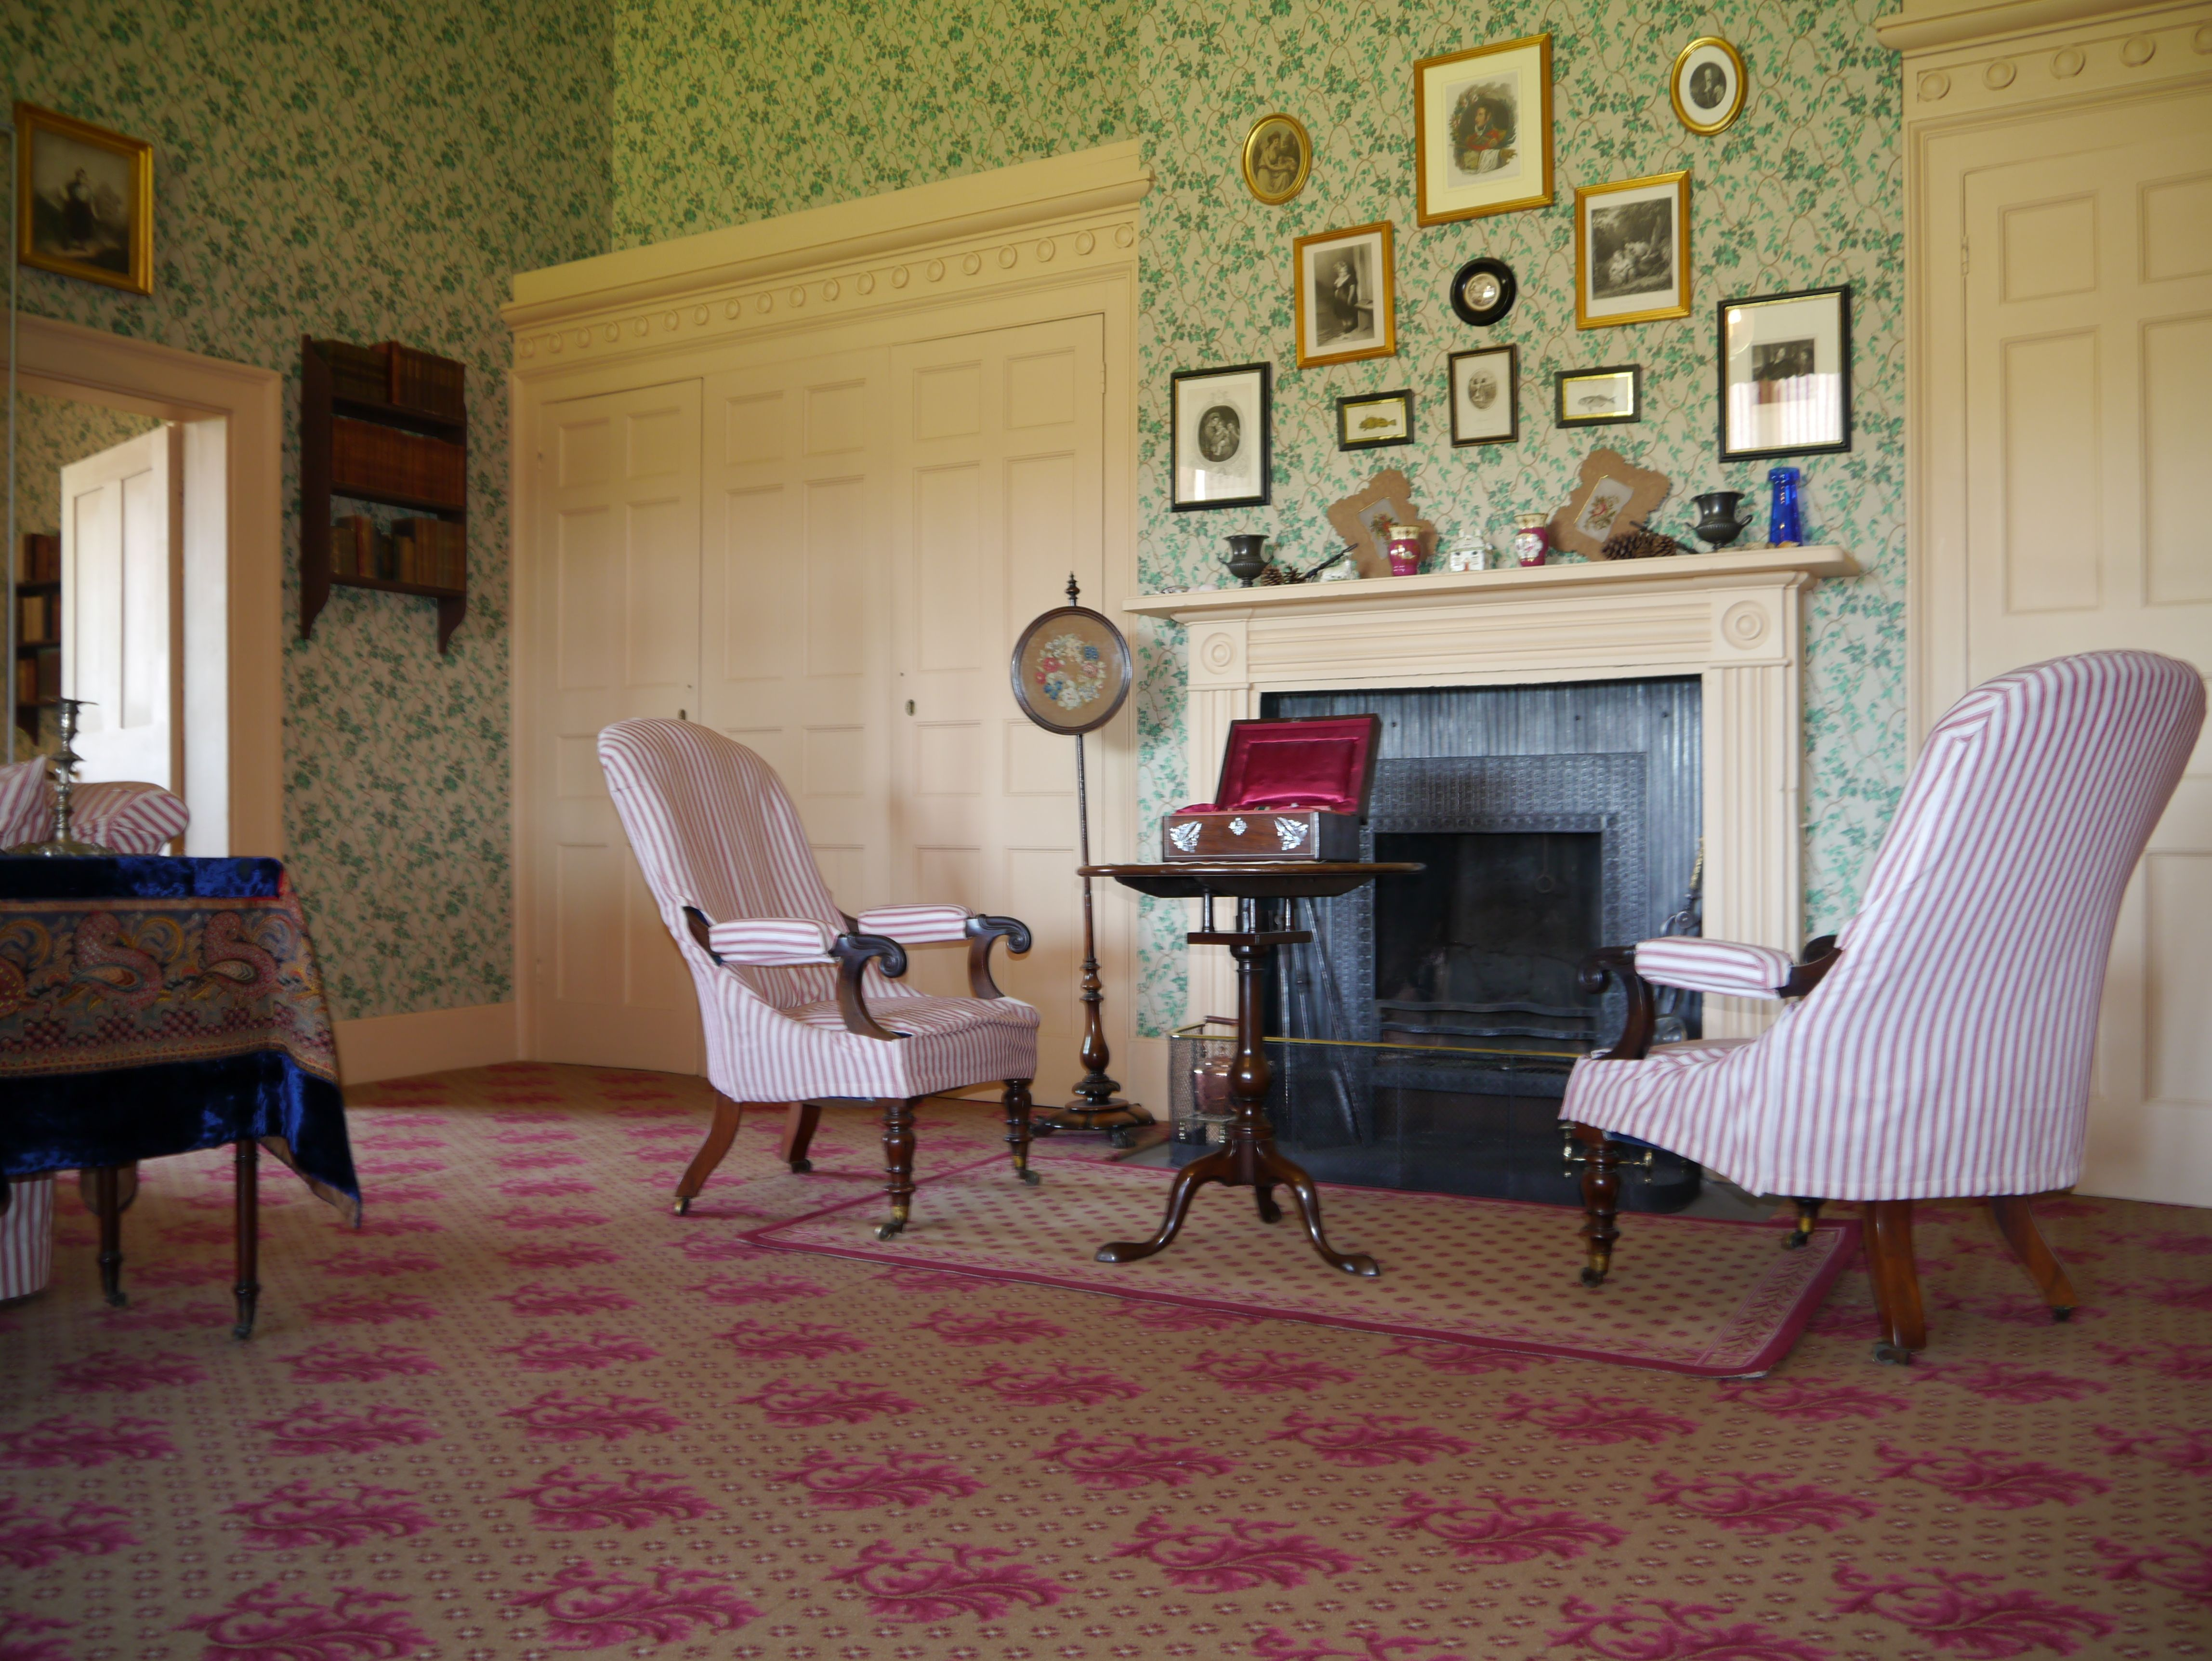 the nursery suite at audley end house essex carpet design from brintons archive: american colonial homes brandon inge